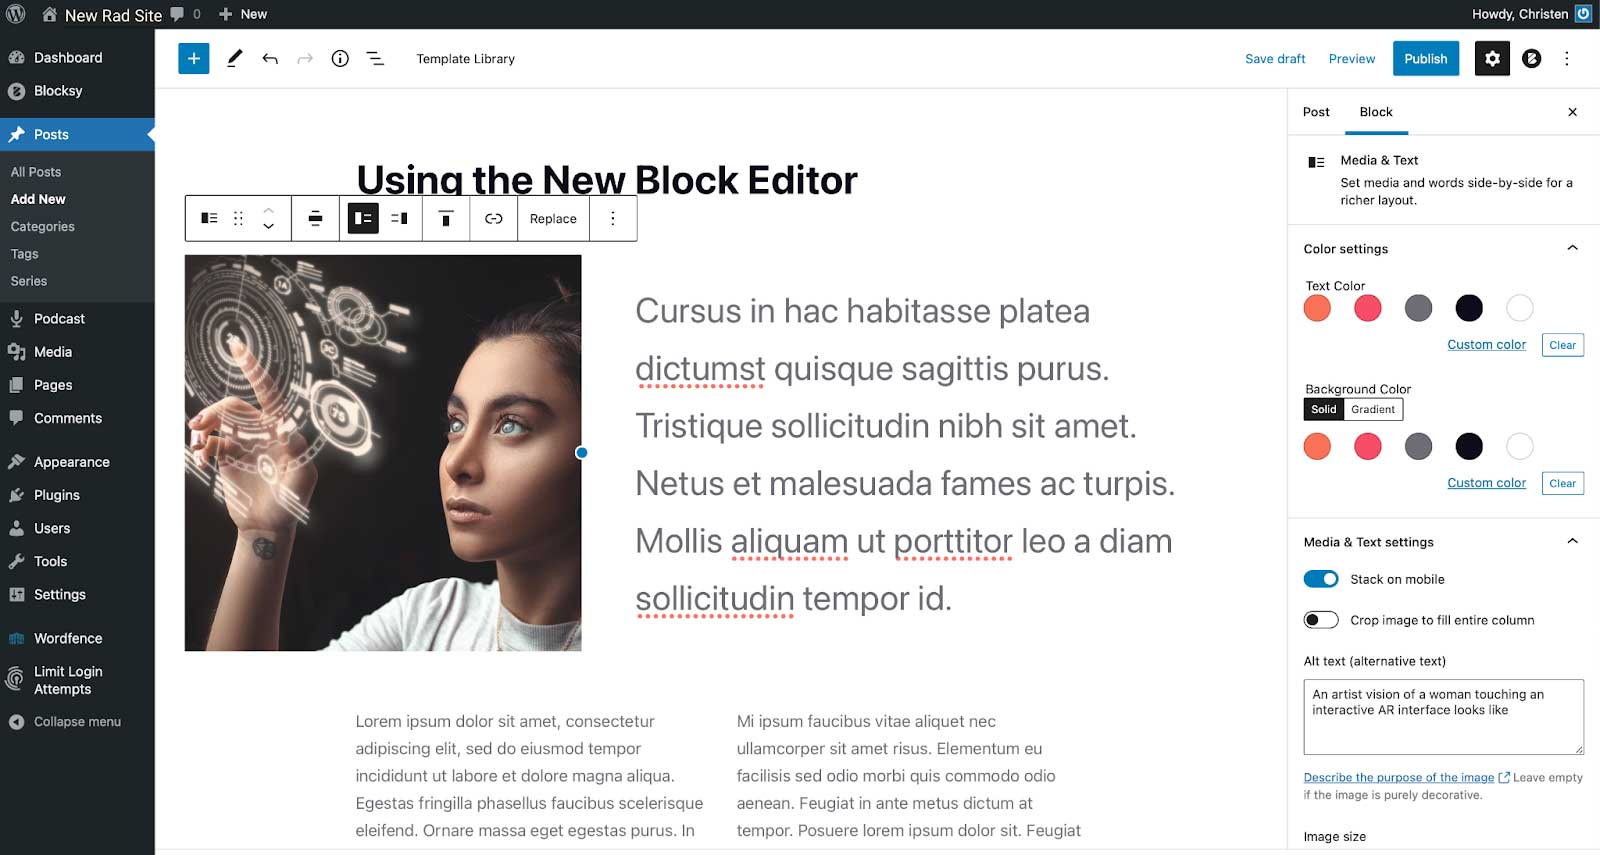 Screenshot of a post being built in the new block editor.